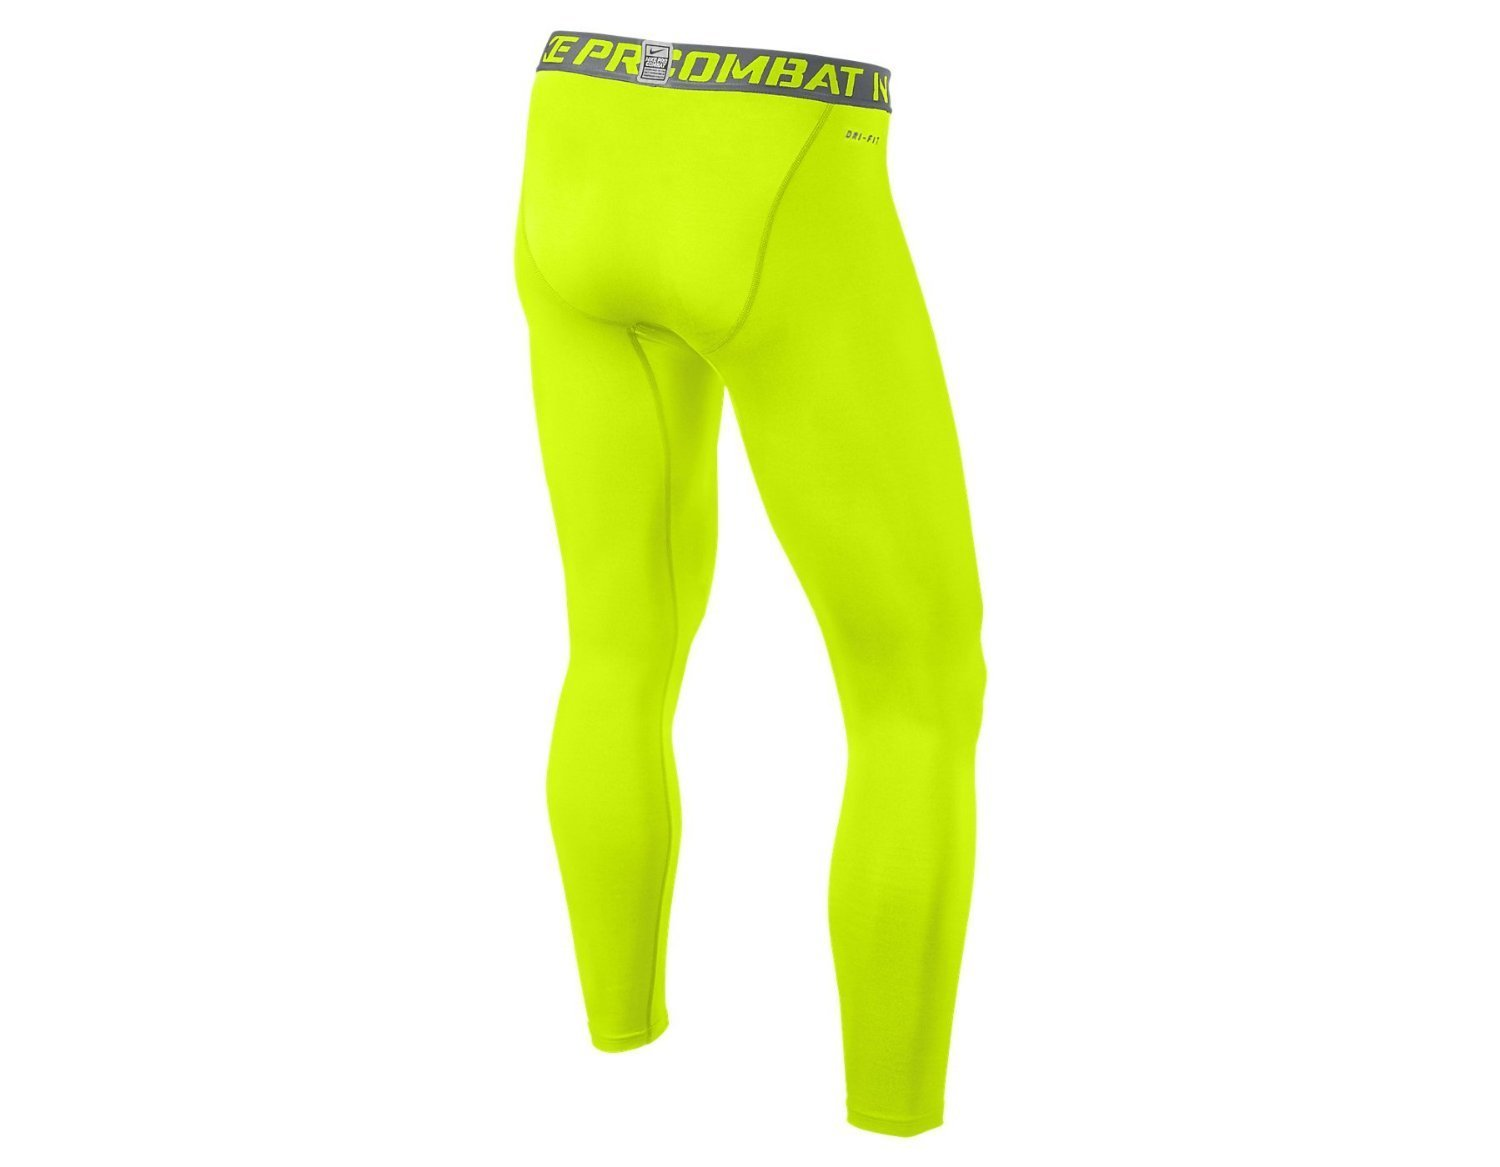 Nike Pro Combat Hypercool Men's Compression Tights Neon Yellow Small